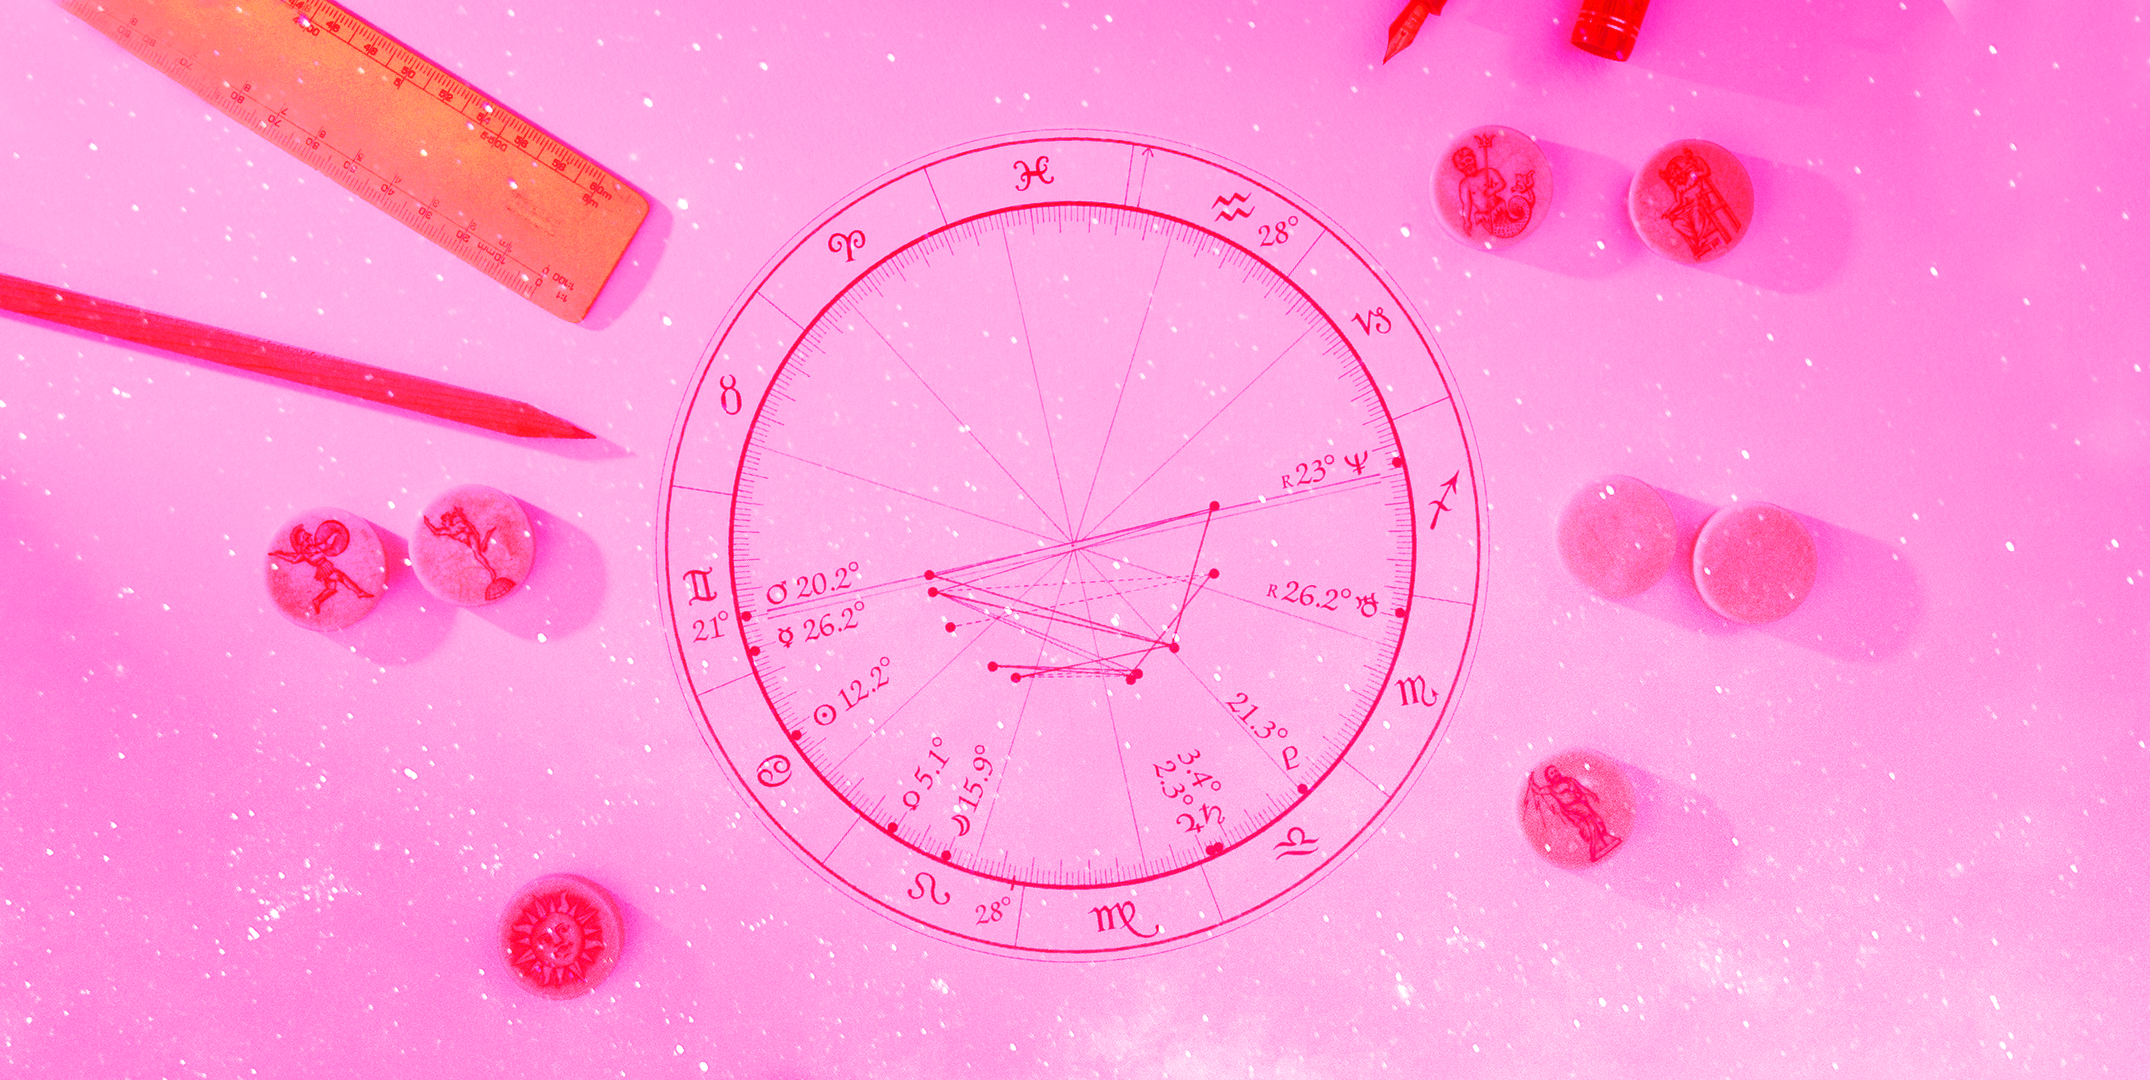 Here's How to Read Your Horoscope Like a Pro - Your Guide to